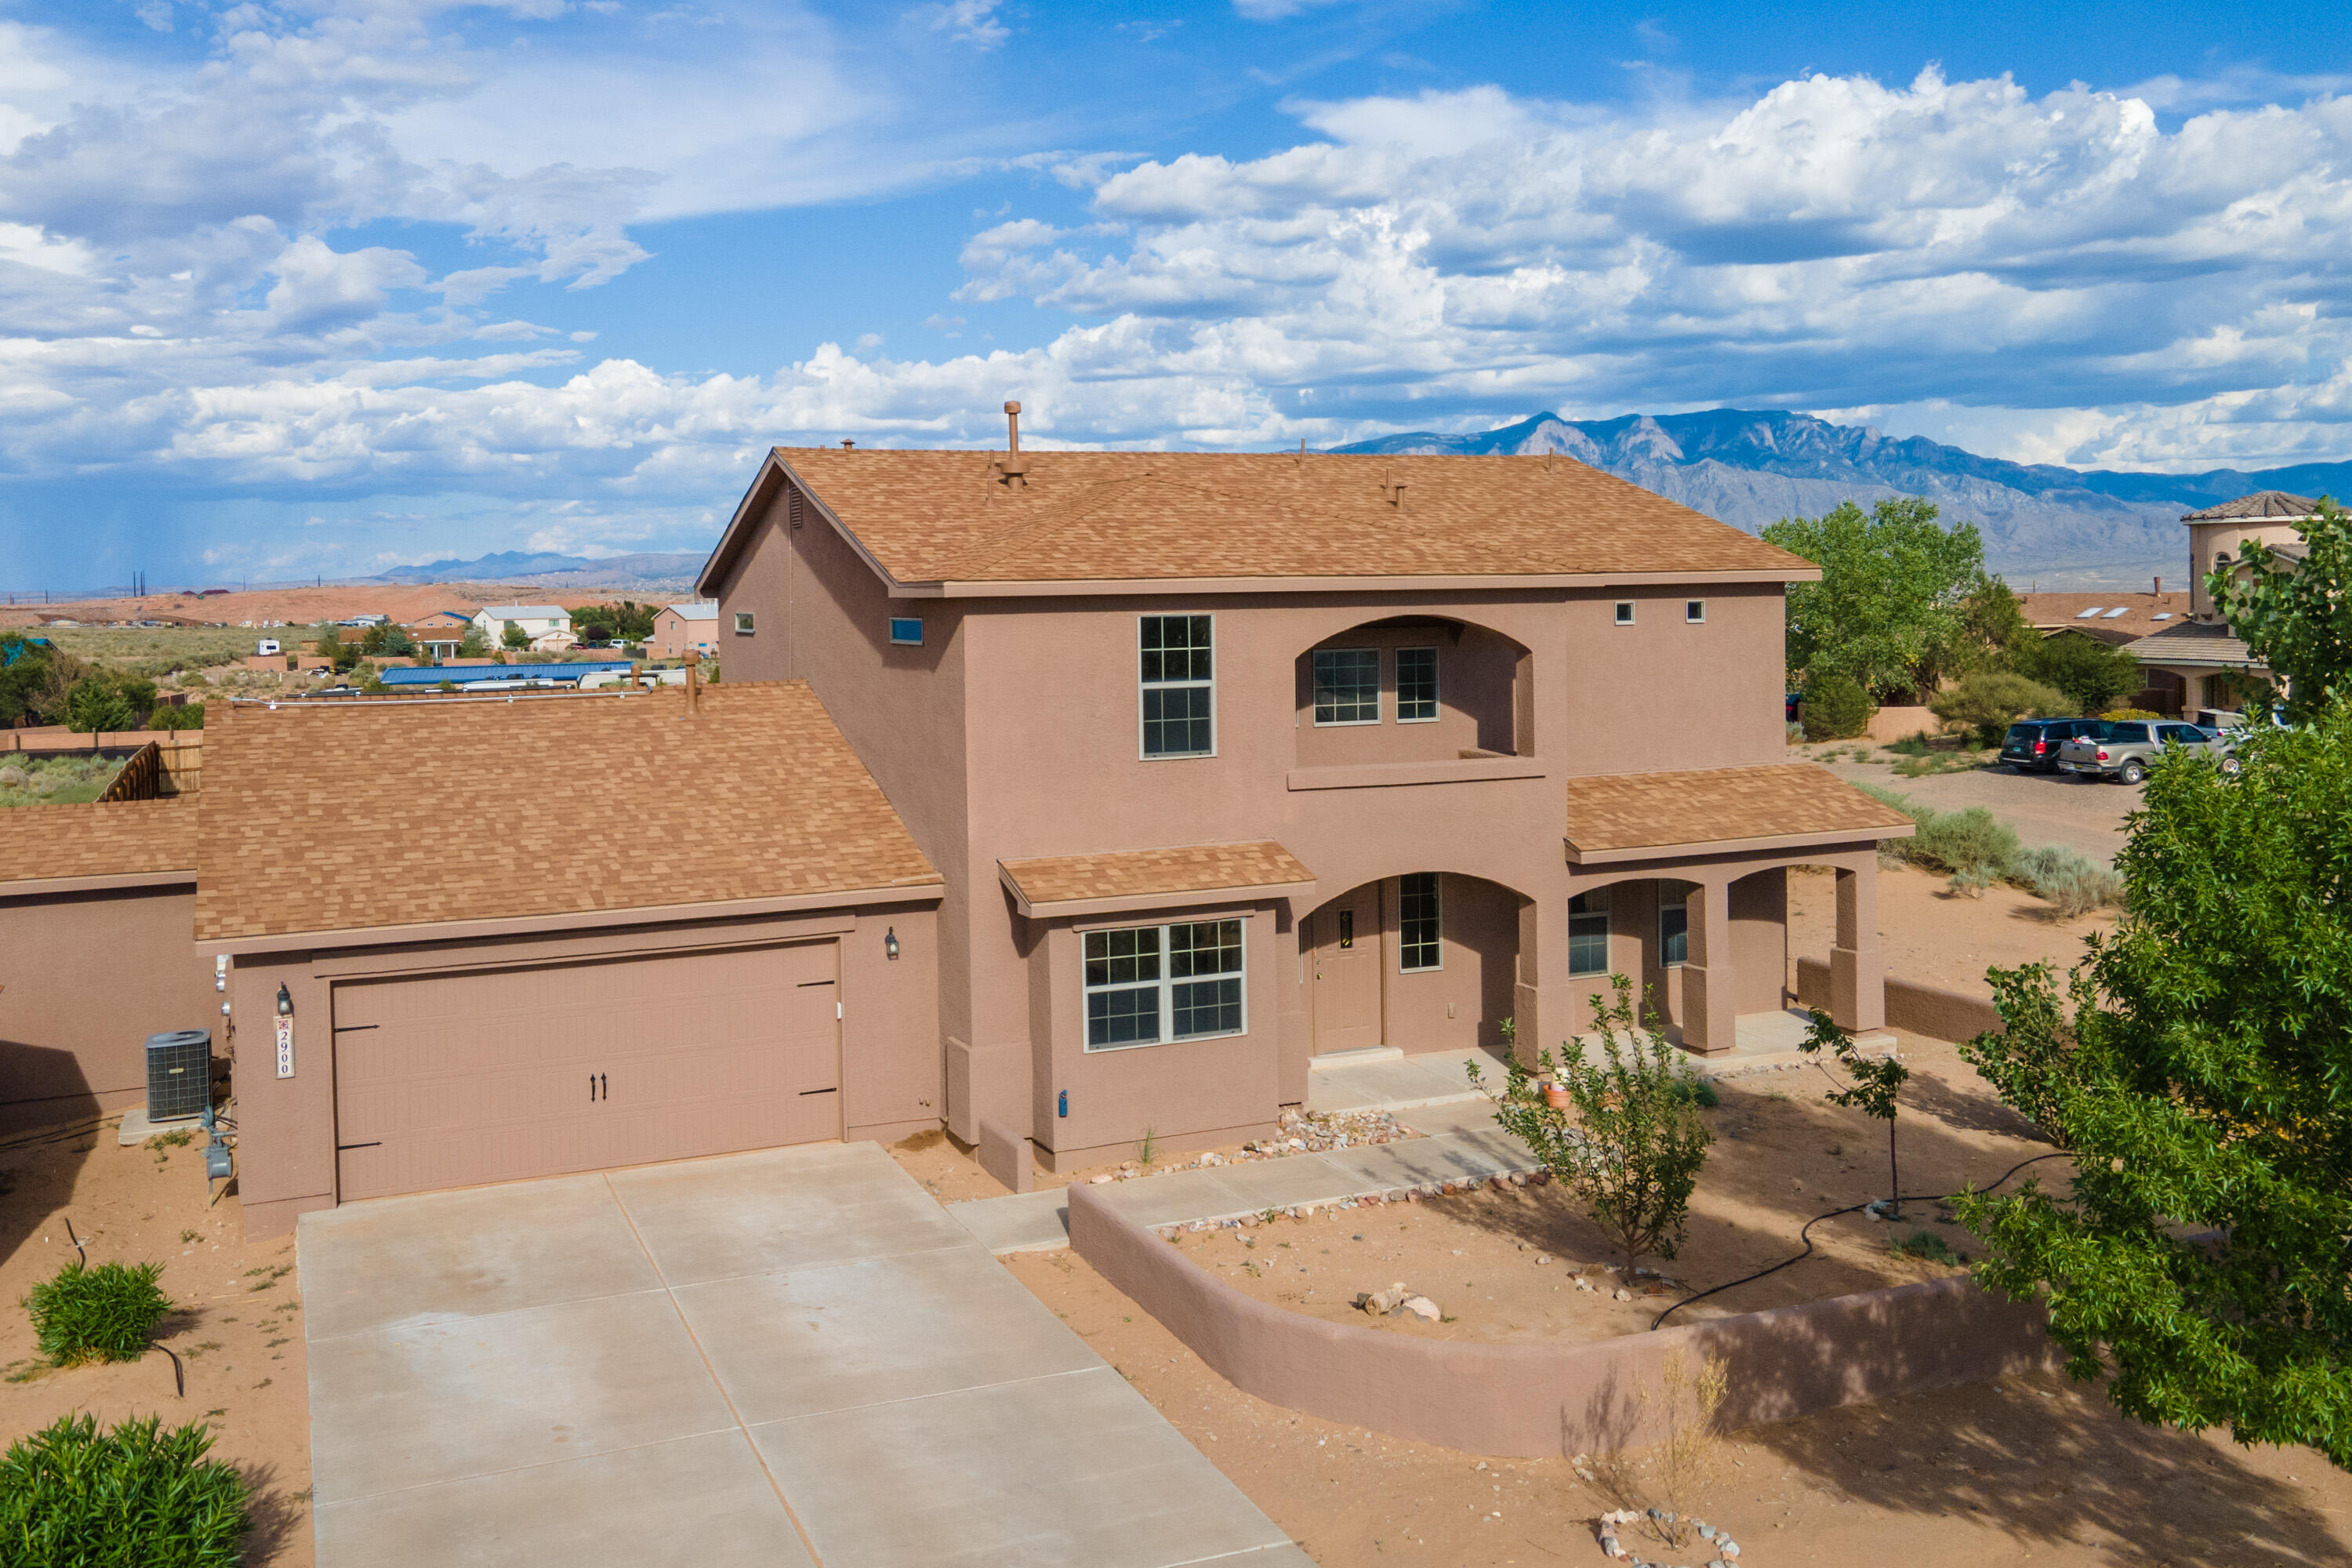 A Must See 4 possible 5 bedroom, 3 bath 2800+ sqft home in near Cleveland HS. Open floor plan formal living room and oversized family room. Enjoy the morning sunrise or sunsets of the Sandia Mts view from the Master Bedroom balcony. w/double sinks, separate shower, jetted tub and large walk-in closet Oversized 1.32 acres corner lot that has plenty of room to keep a horse happy and don't miss the separate room off the garage that could be either an office for a quick telecommute or a tucked away craft room. Many possibilities for this unique home. Almost forgot to mention the new roof in 2020.  Come see it today may not be here long.